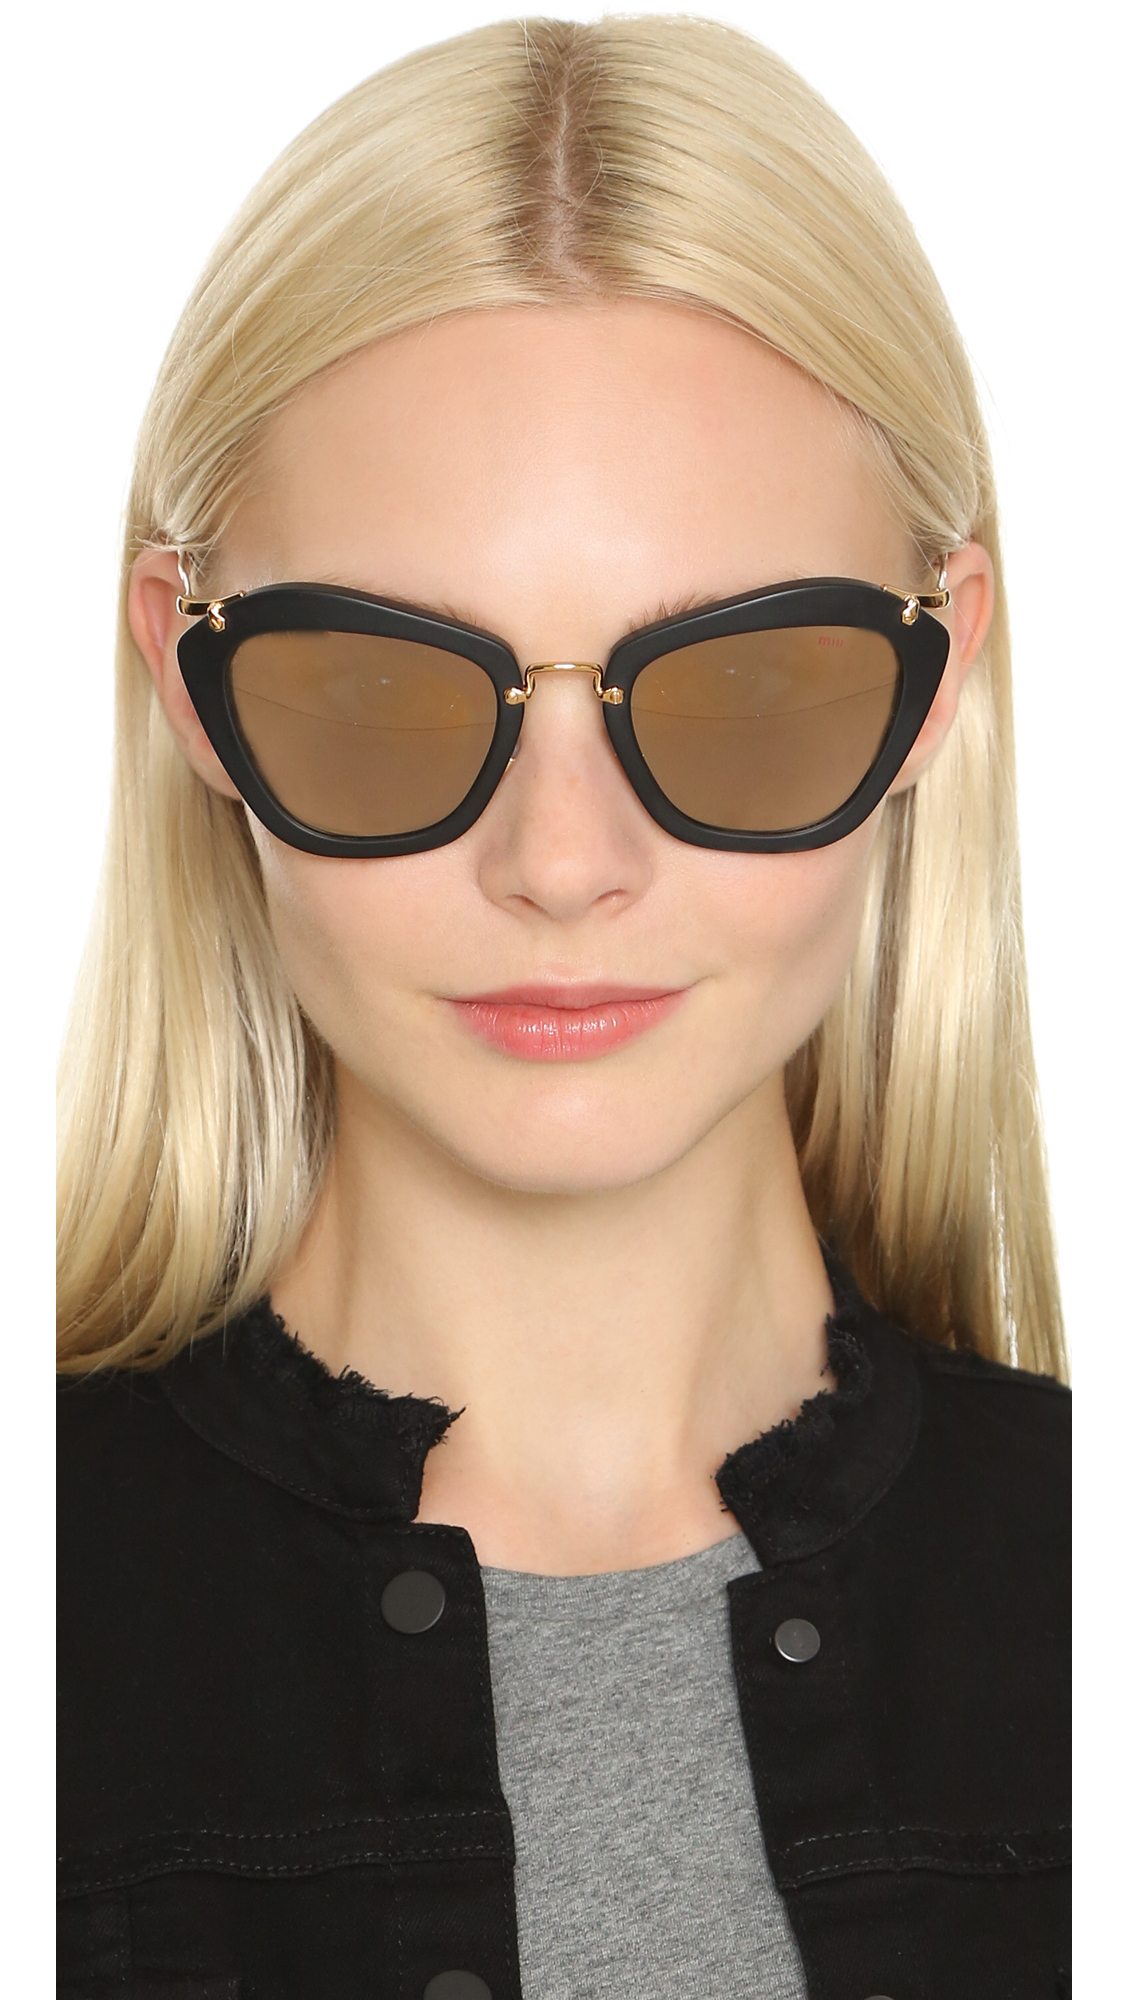 eb2e6f8d37d Lyst - Miu Miu Matte Cat Eye Sunglasses in Black